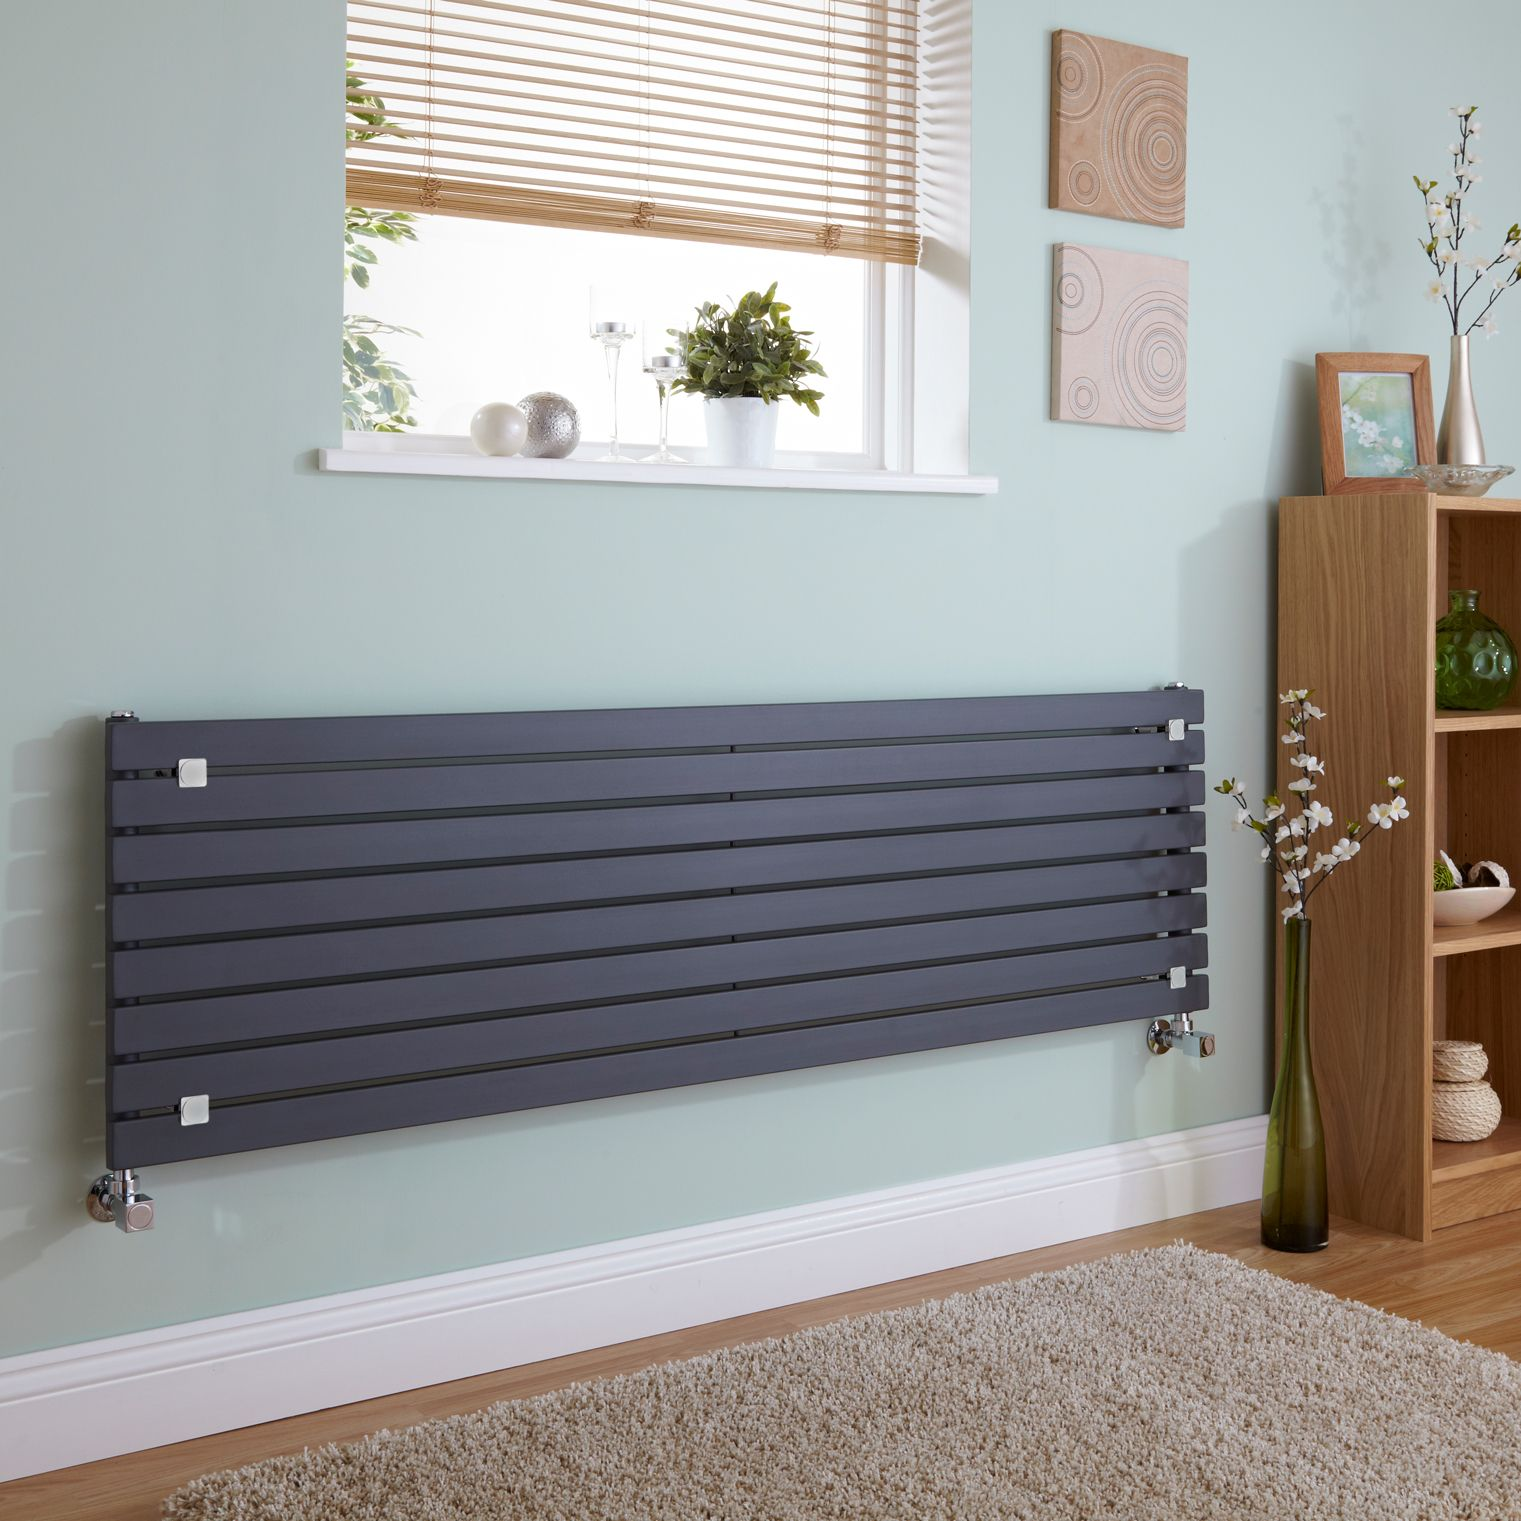 Milano Capri - Anthracite Horizontal Flat Panel Designer Radiator 472mm x 1780mm